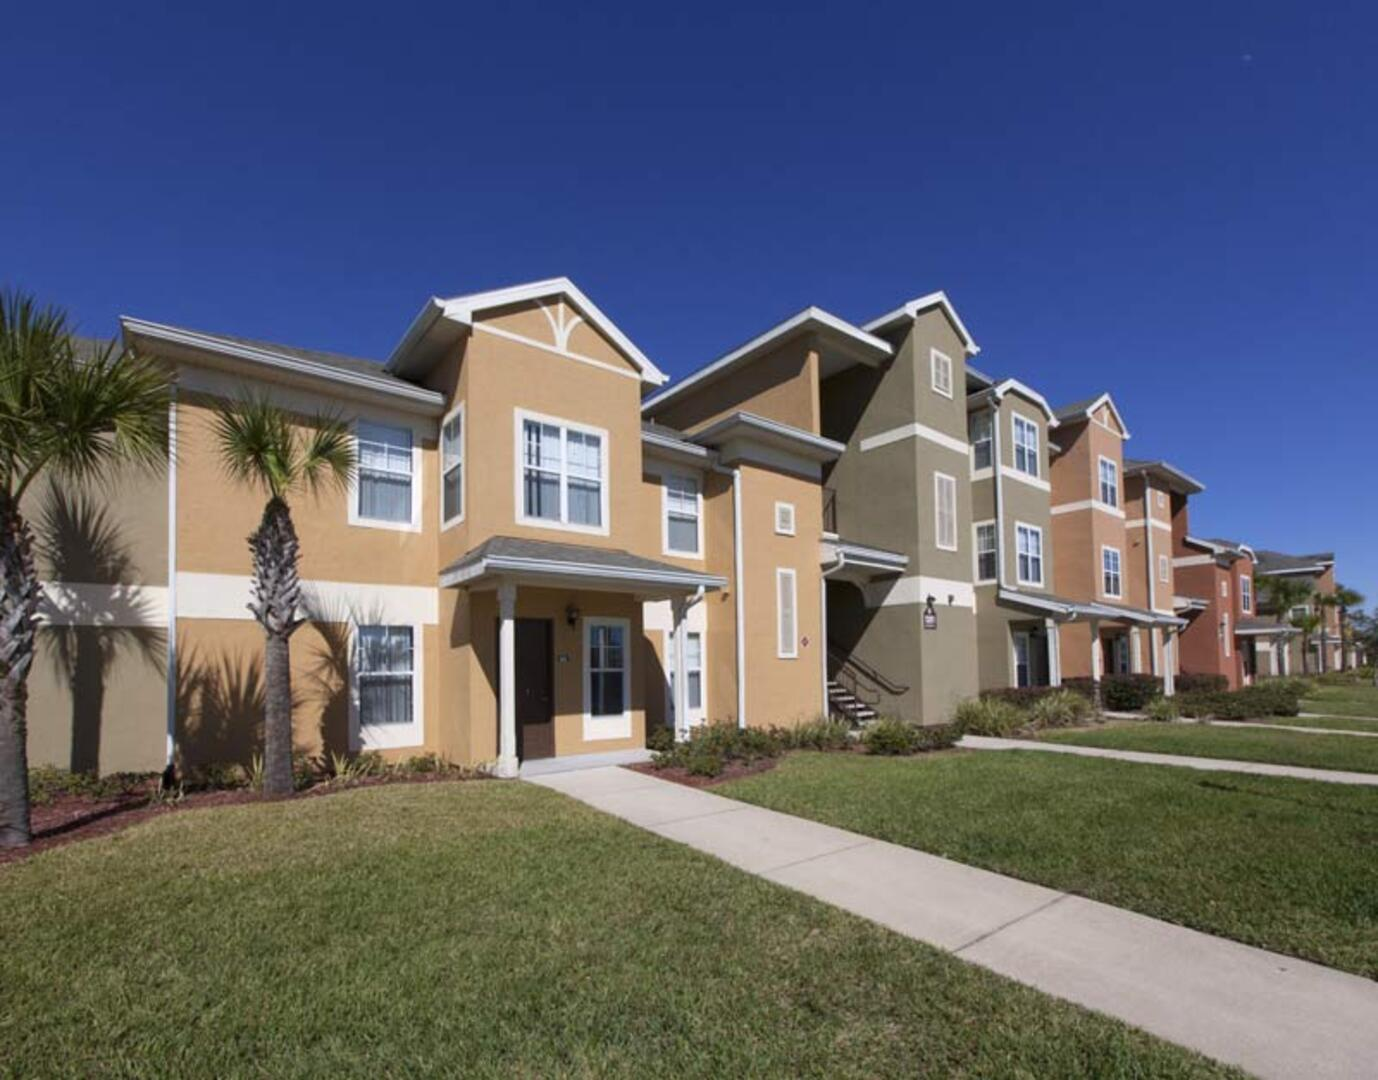 apartments for rent in orlando, fl | pinnacle pointe - home